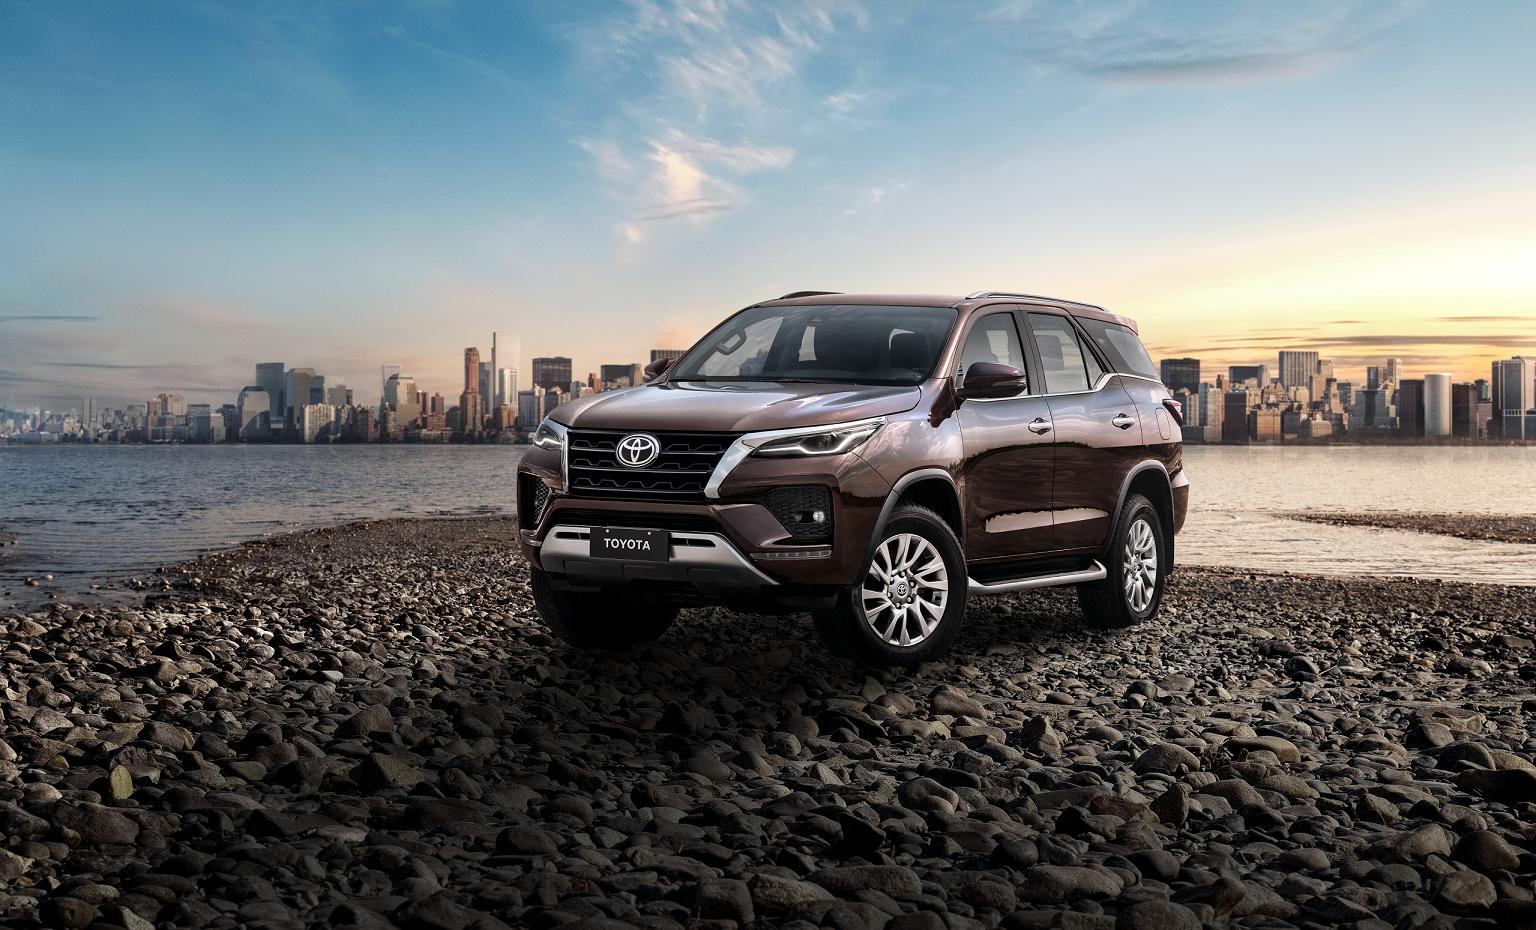 https://www.toyotacomunica.com.br/wp-content/uploads/2020/11/1_SW4_2021.png